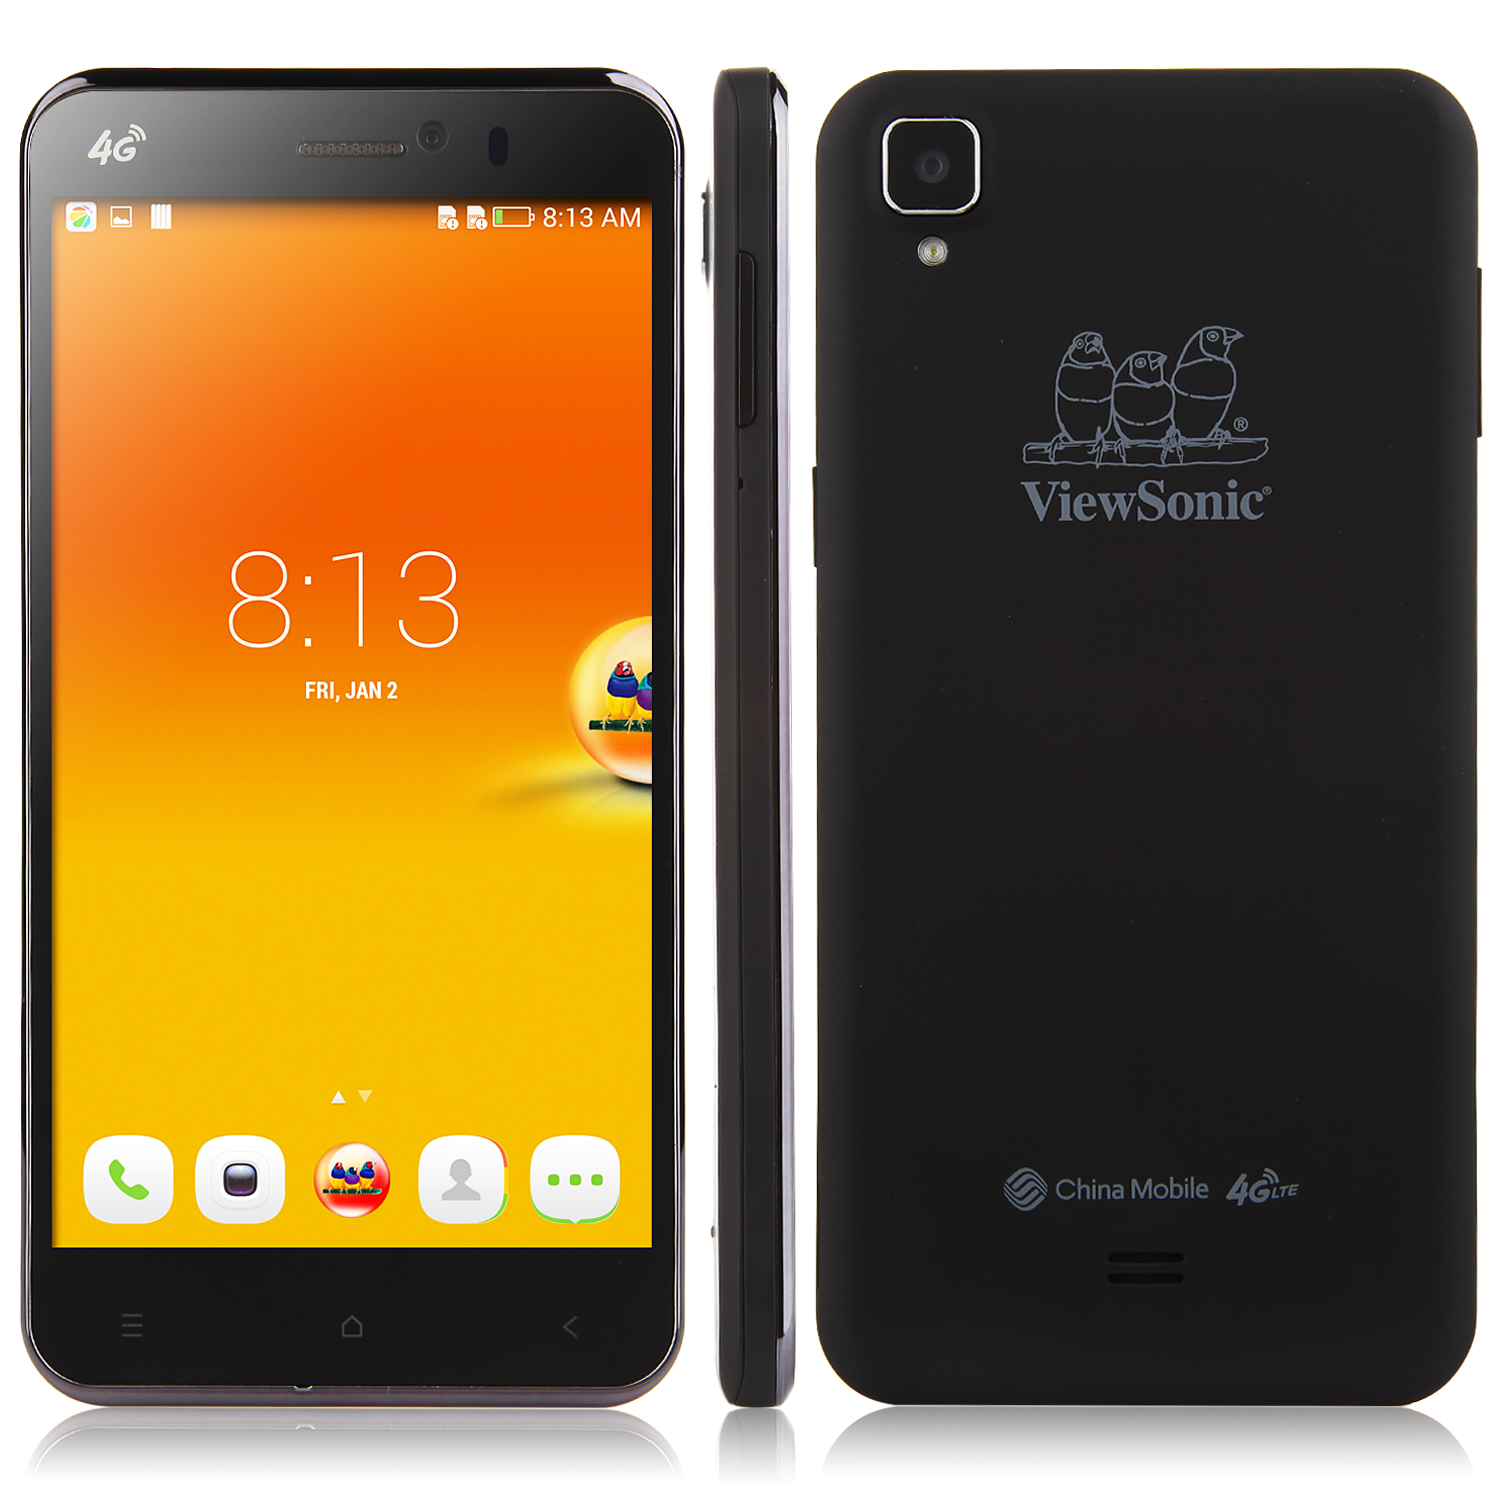 ViewSonic V500 Smartphone 4G 5.5 Inch FHD 2GB 16GB MSM8926 Quad Core Android 4.4 Black